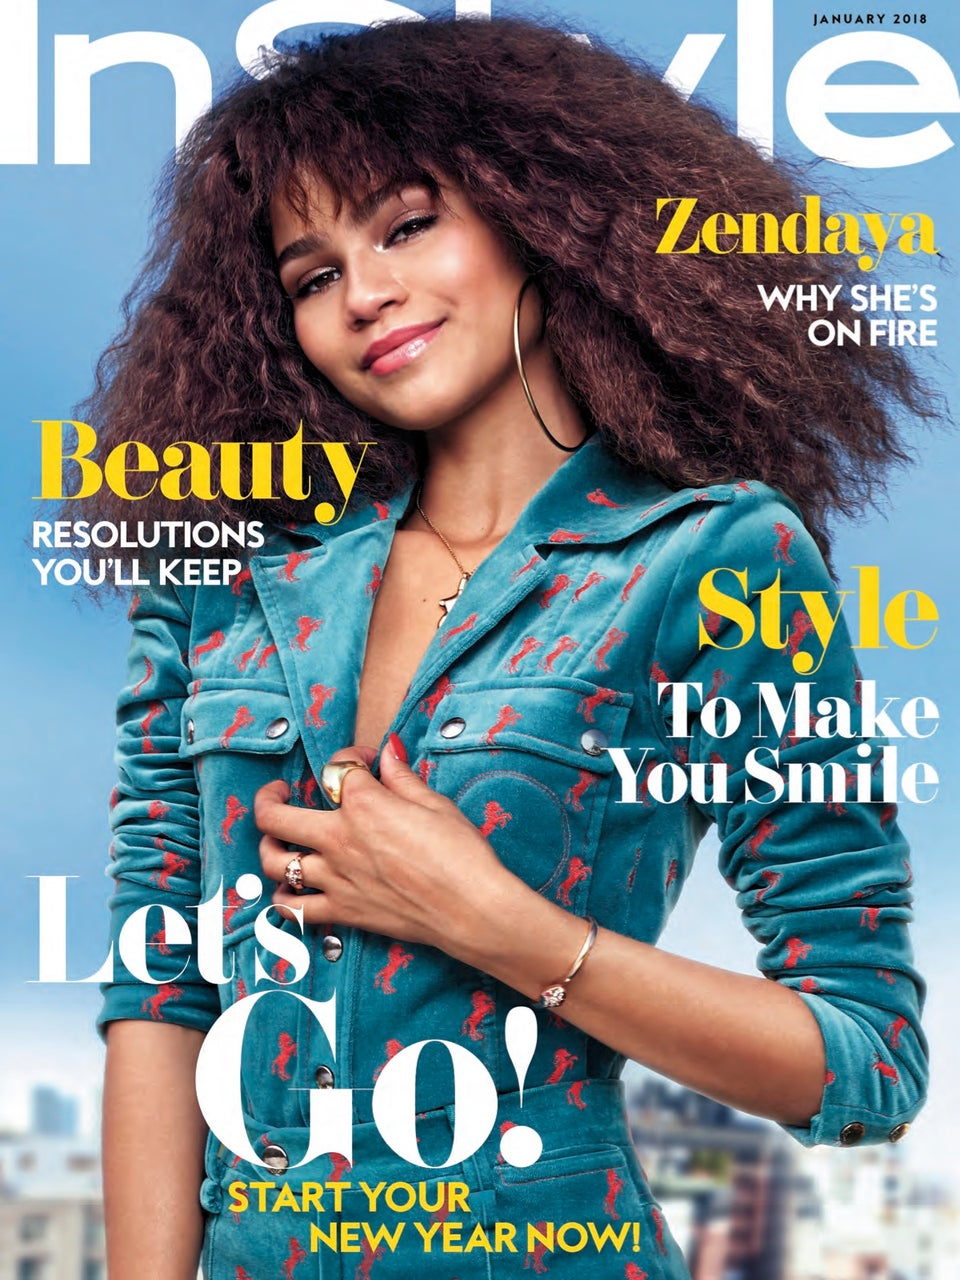 Zendaya On InStyle Jan 2018